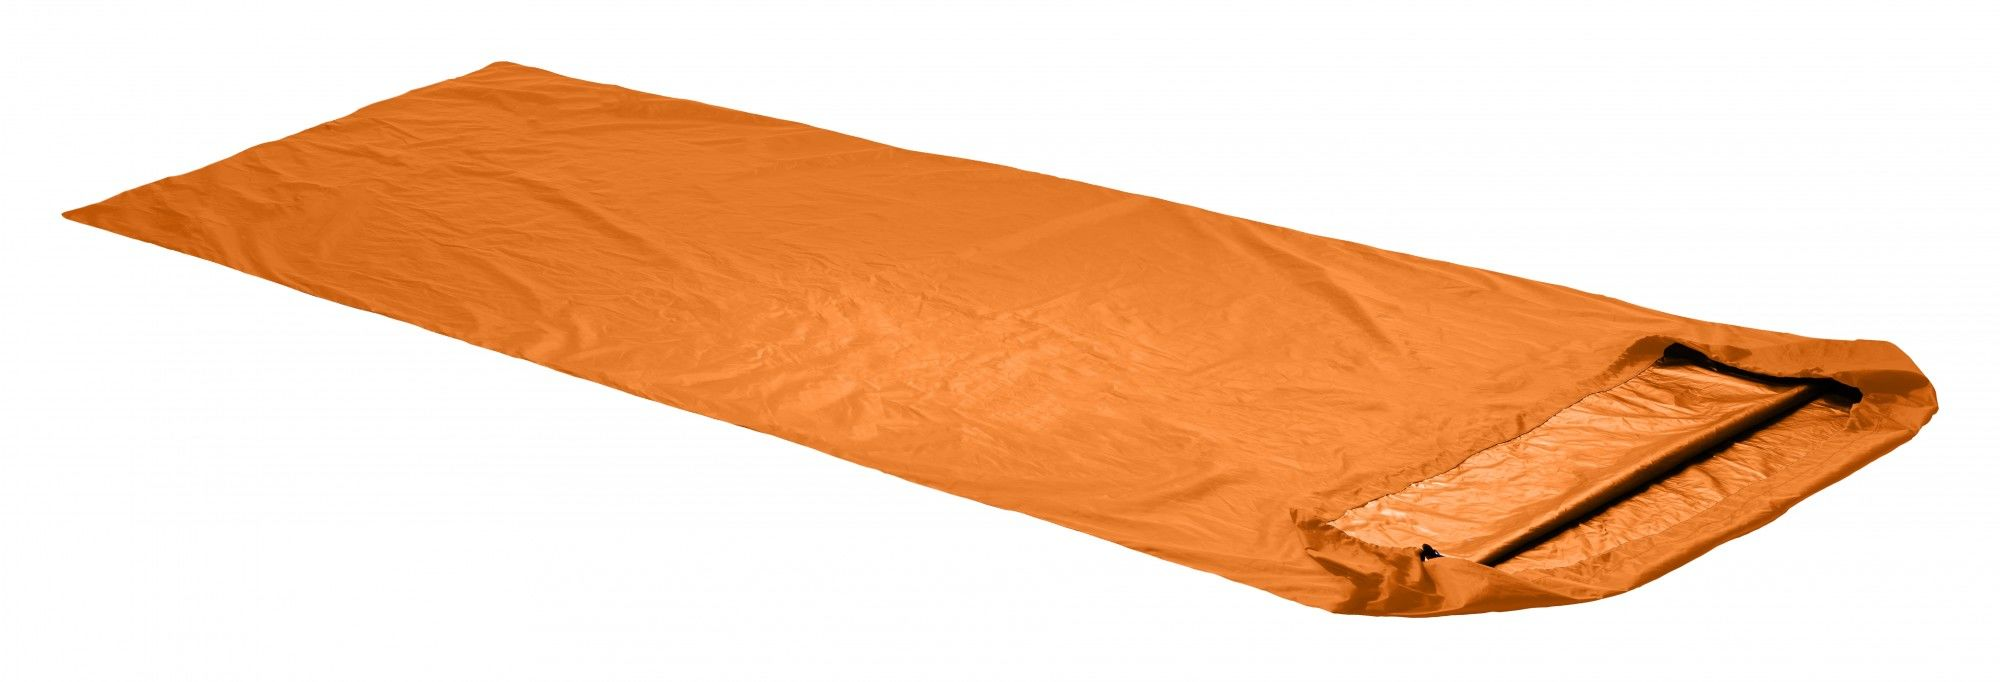 Ortovox Bivy Single Orange, Biwaksack, 230 cm